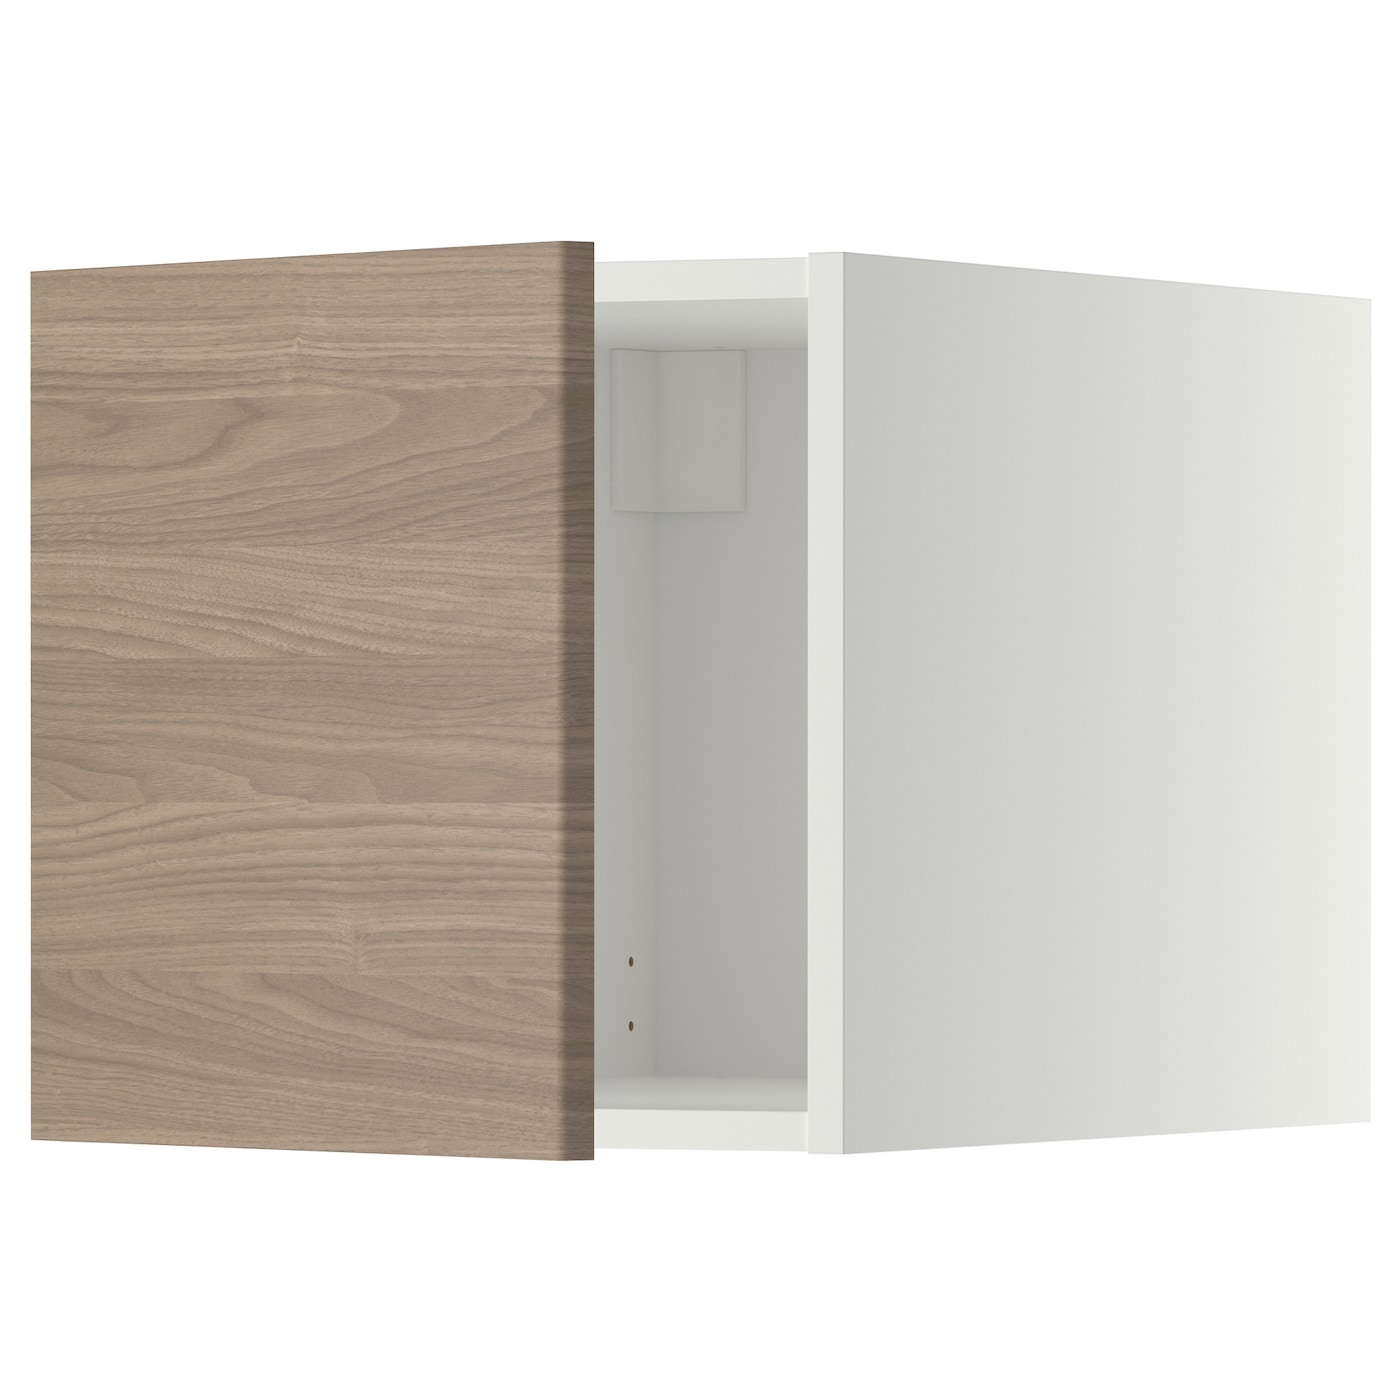 METOD Top cabinet White/brokhult light grey 40x40 cm - IKEA